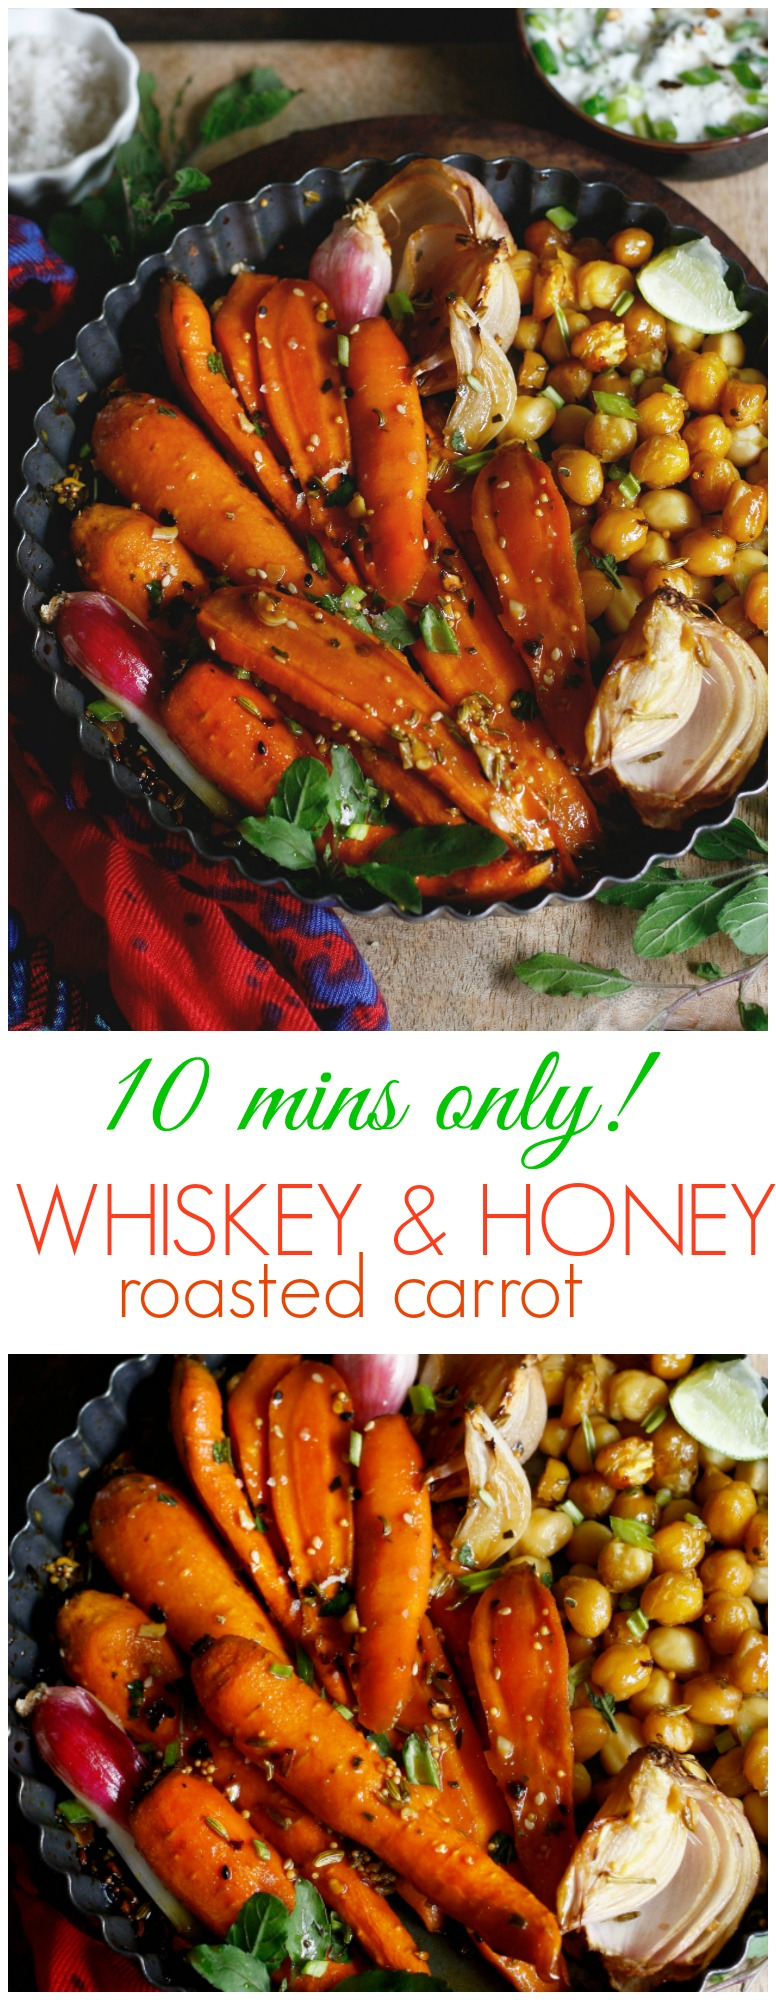 whiskey and honey roasted carrot